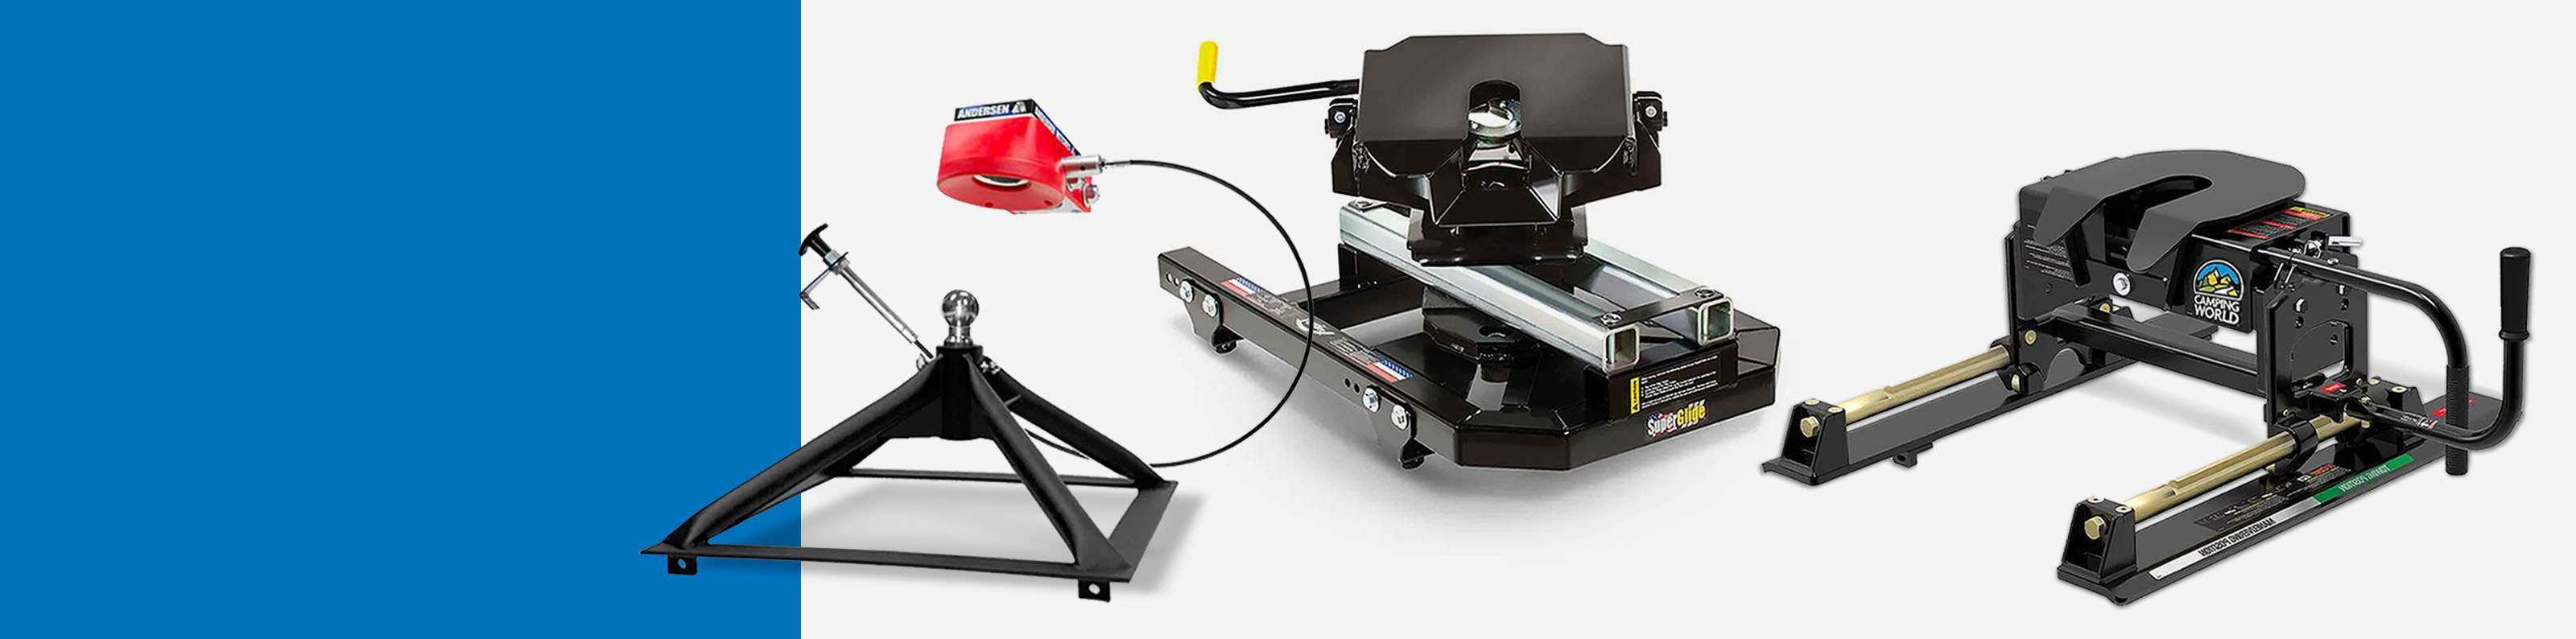 Save up to $200 on Fifth Wheel Hitches